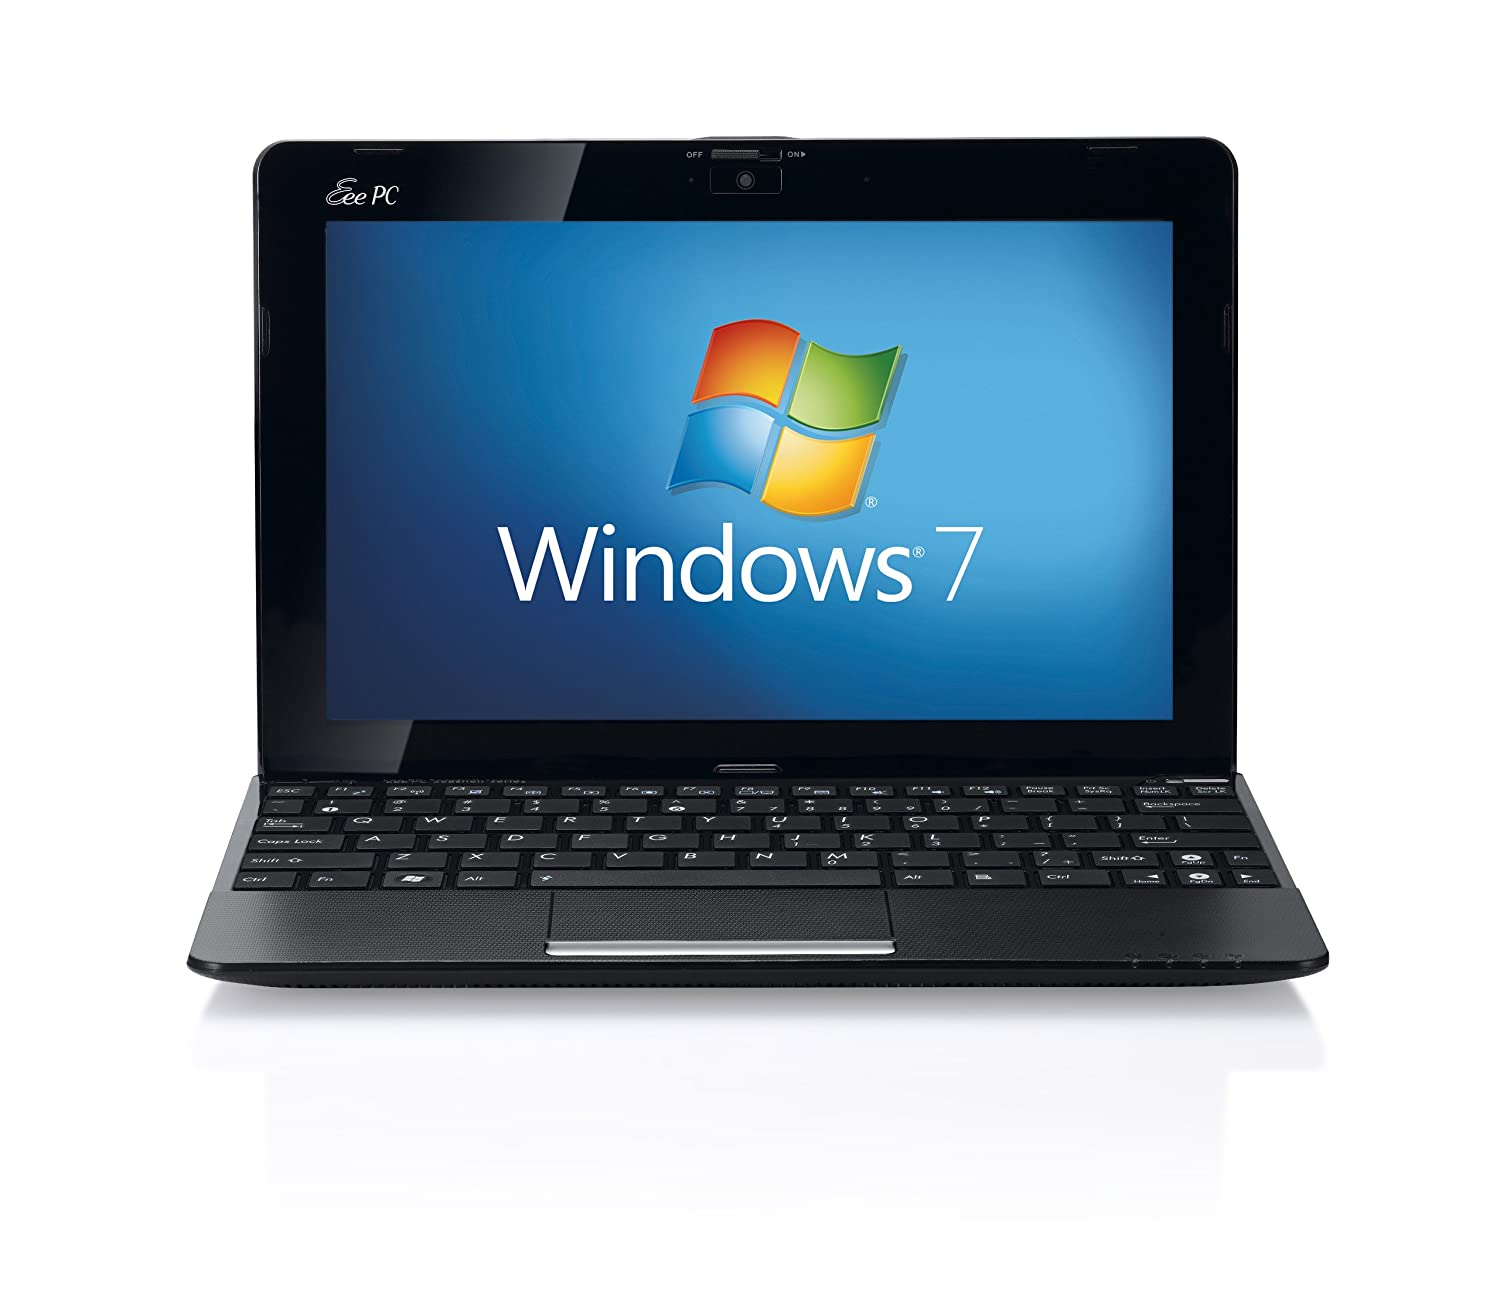 ASUS Eee PC 1015P 10.1 inch netbook (Intel Atom N450 1.66GHz, 1GB RAM,  160GB HDD, WLAN, Webcam, Up to 11hrs battery life, Windows 7 Starter) -  Black: ...